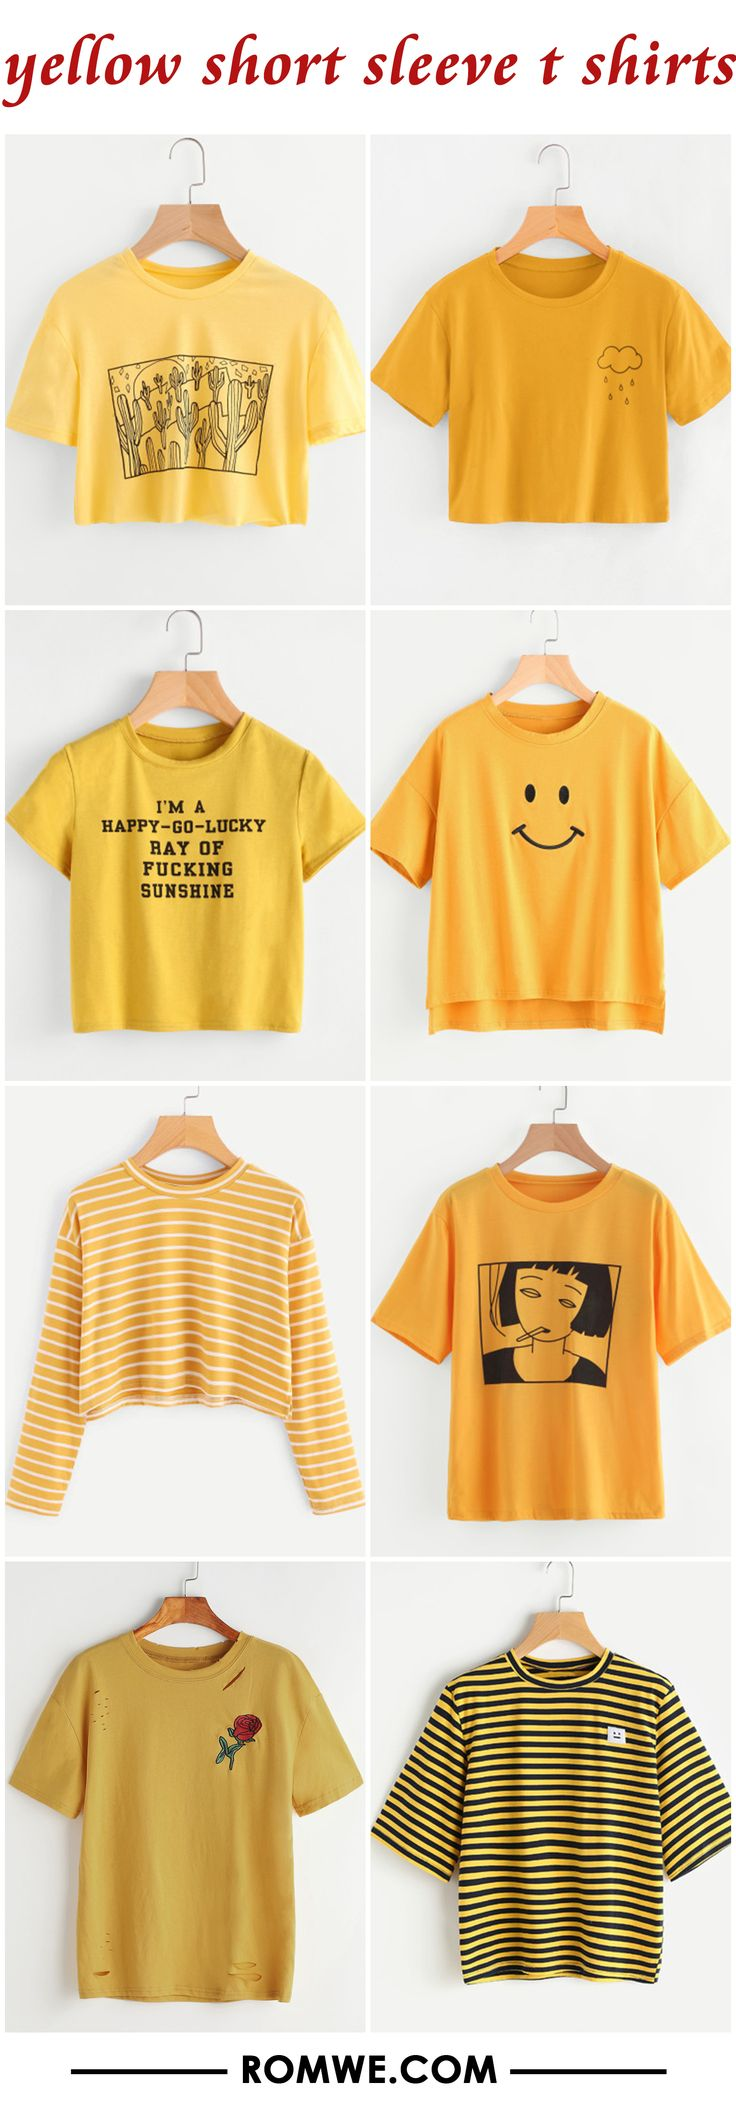 yellow short sleeve t shirts from romwe.com